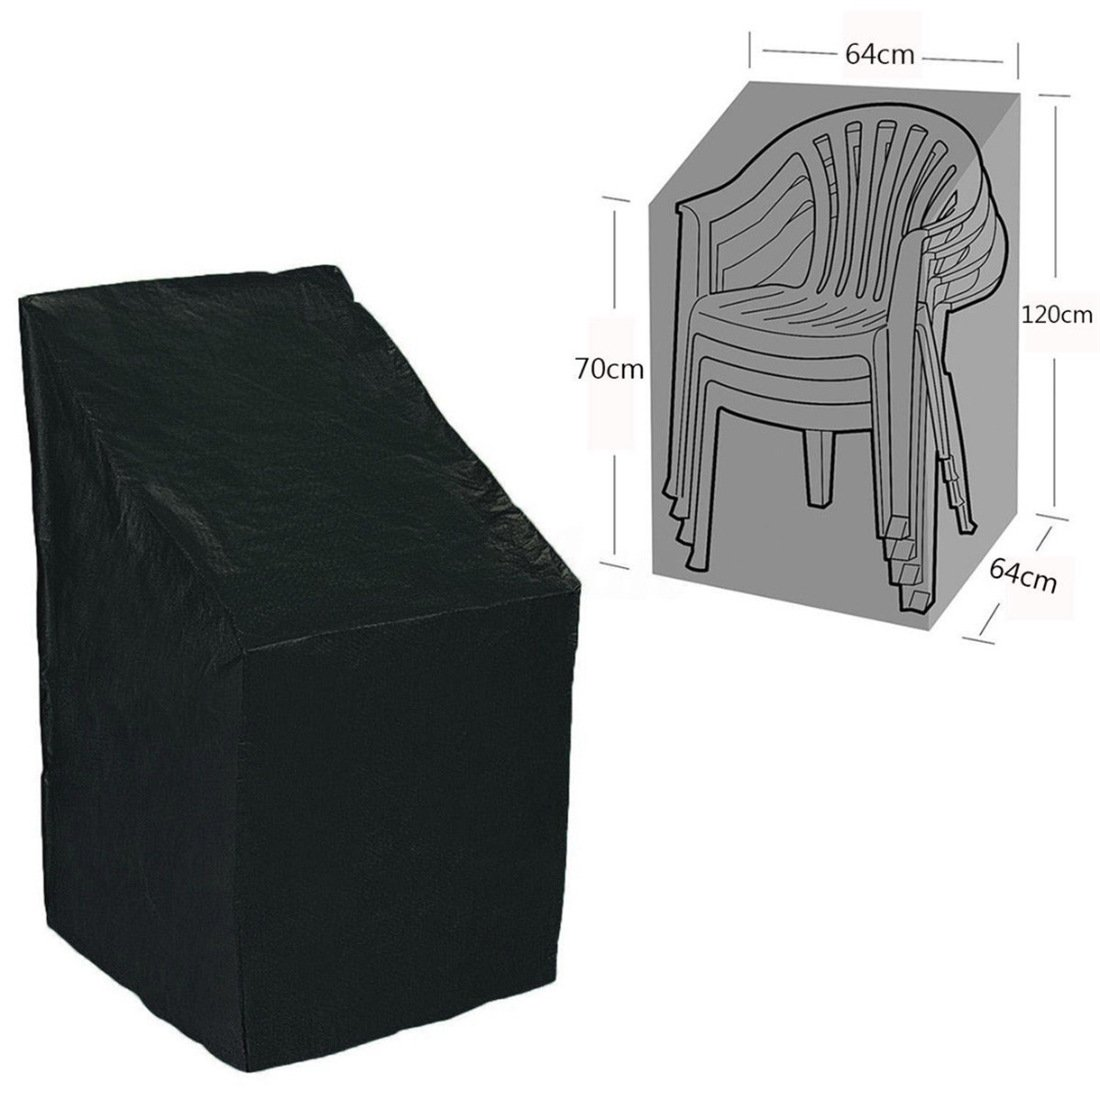 Waterproof Patio Chair Cover Folding Outdoor Patio Furniture Protectors TM